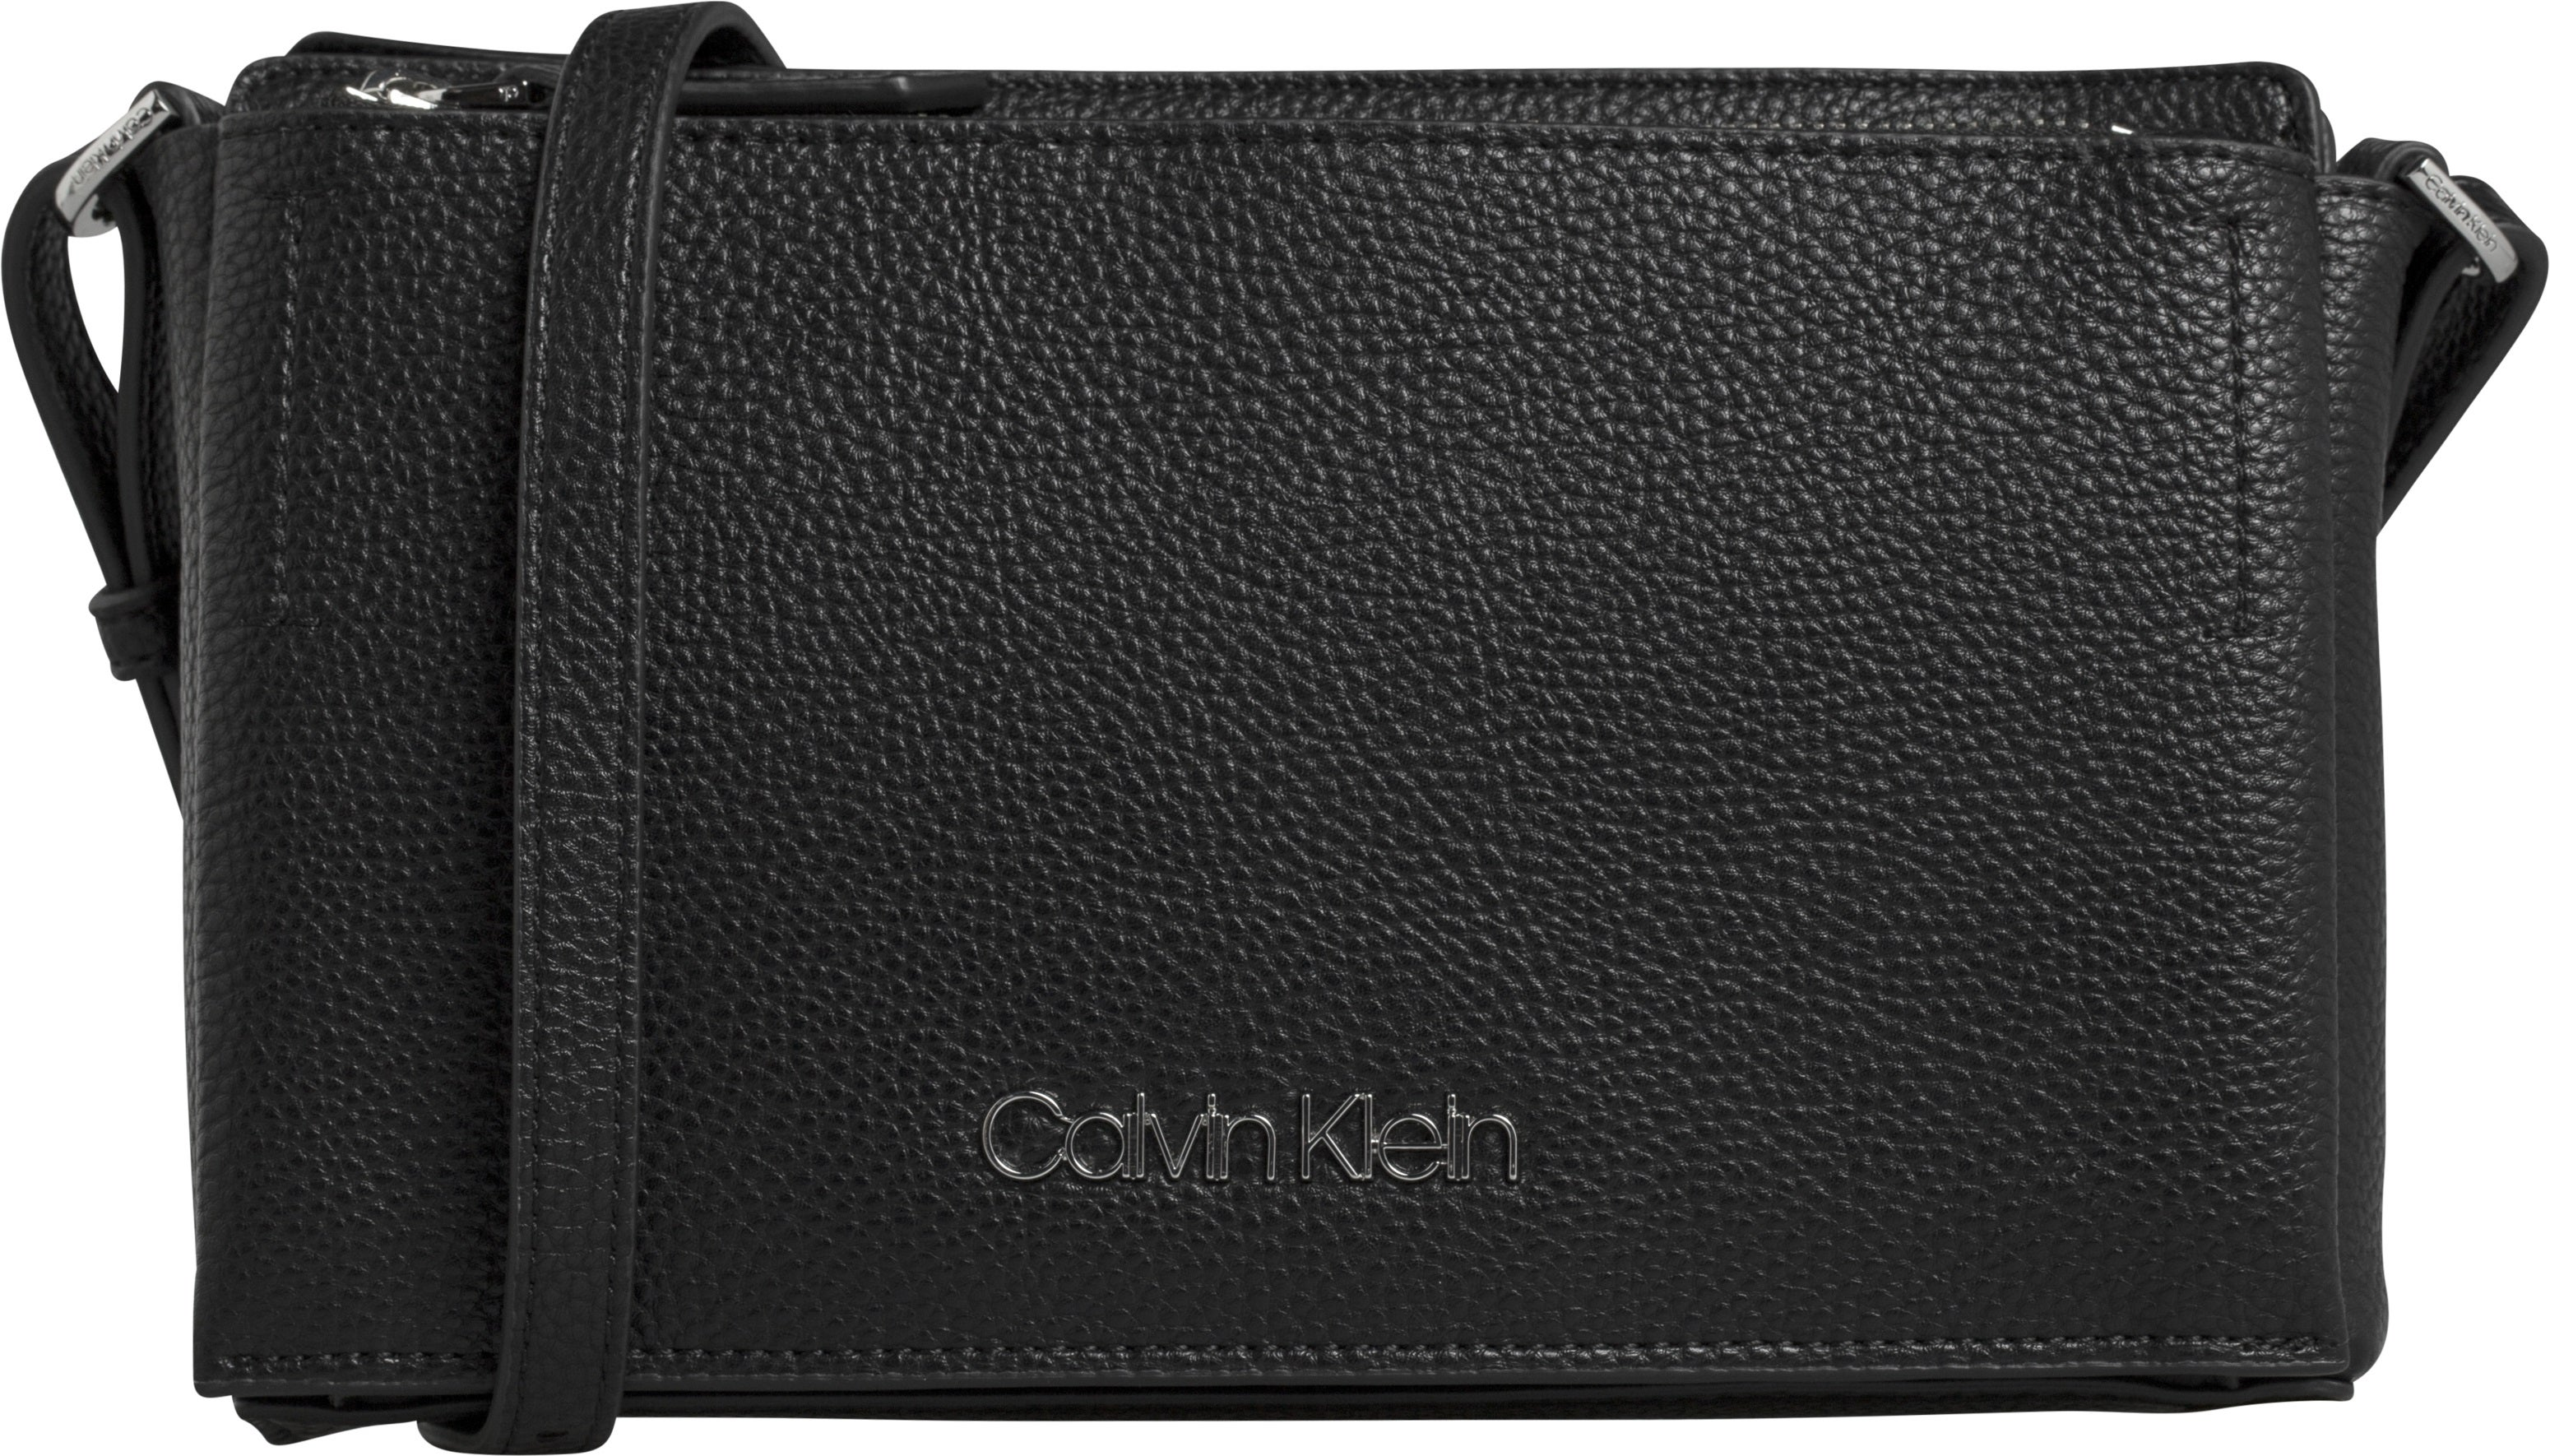 Calvin Klein Sided Ew Crossbody Handbag